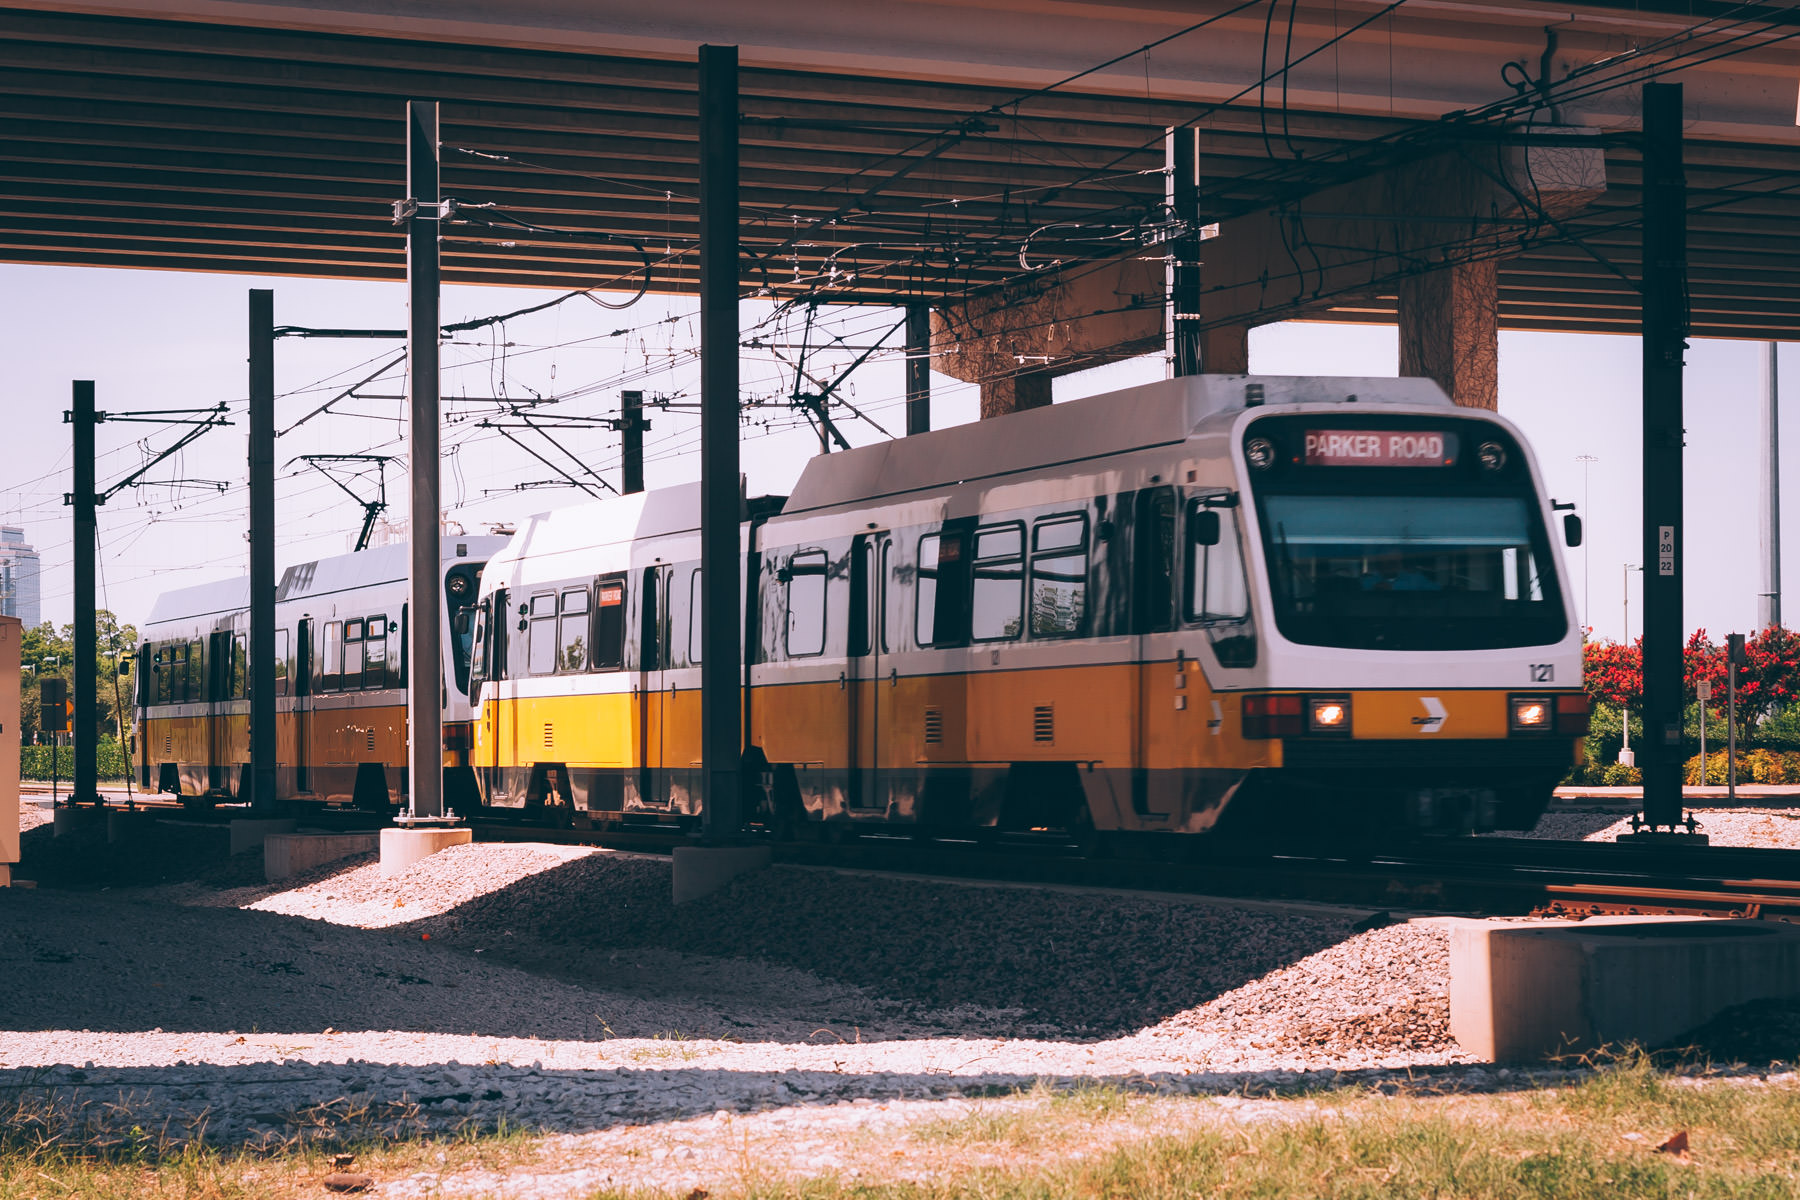 A DART light rail train at Plano, Texas' Bush Turnpike Station.